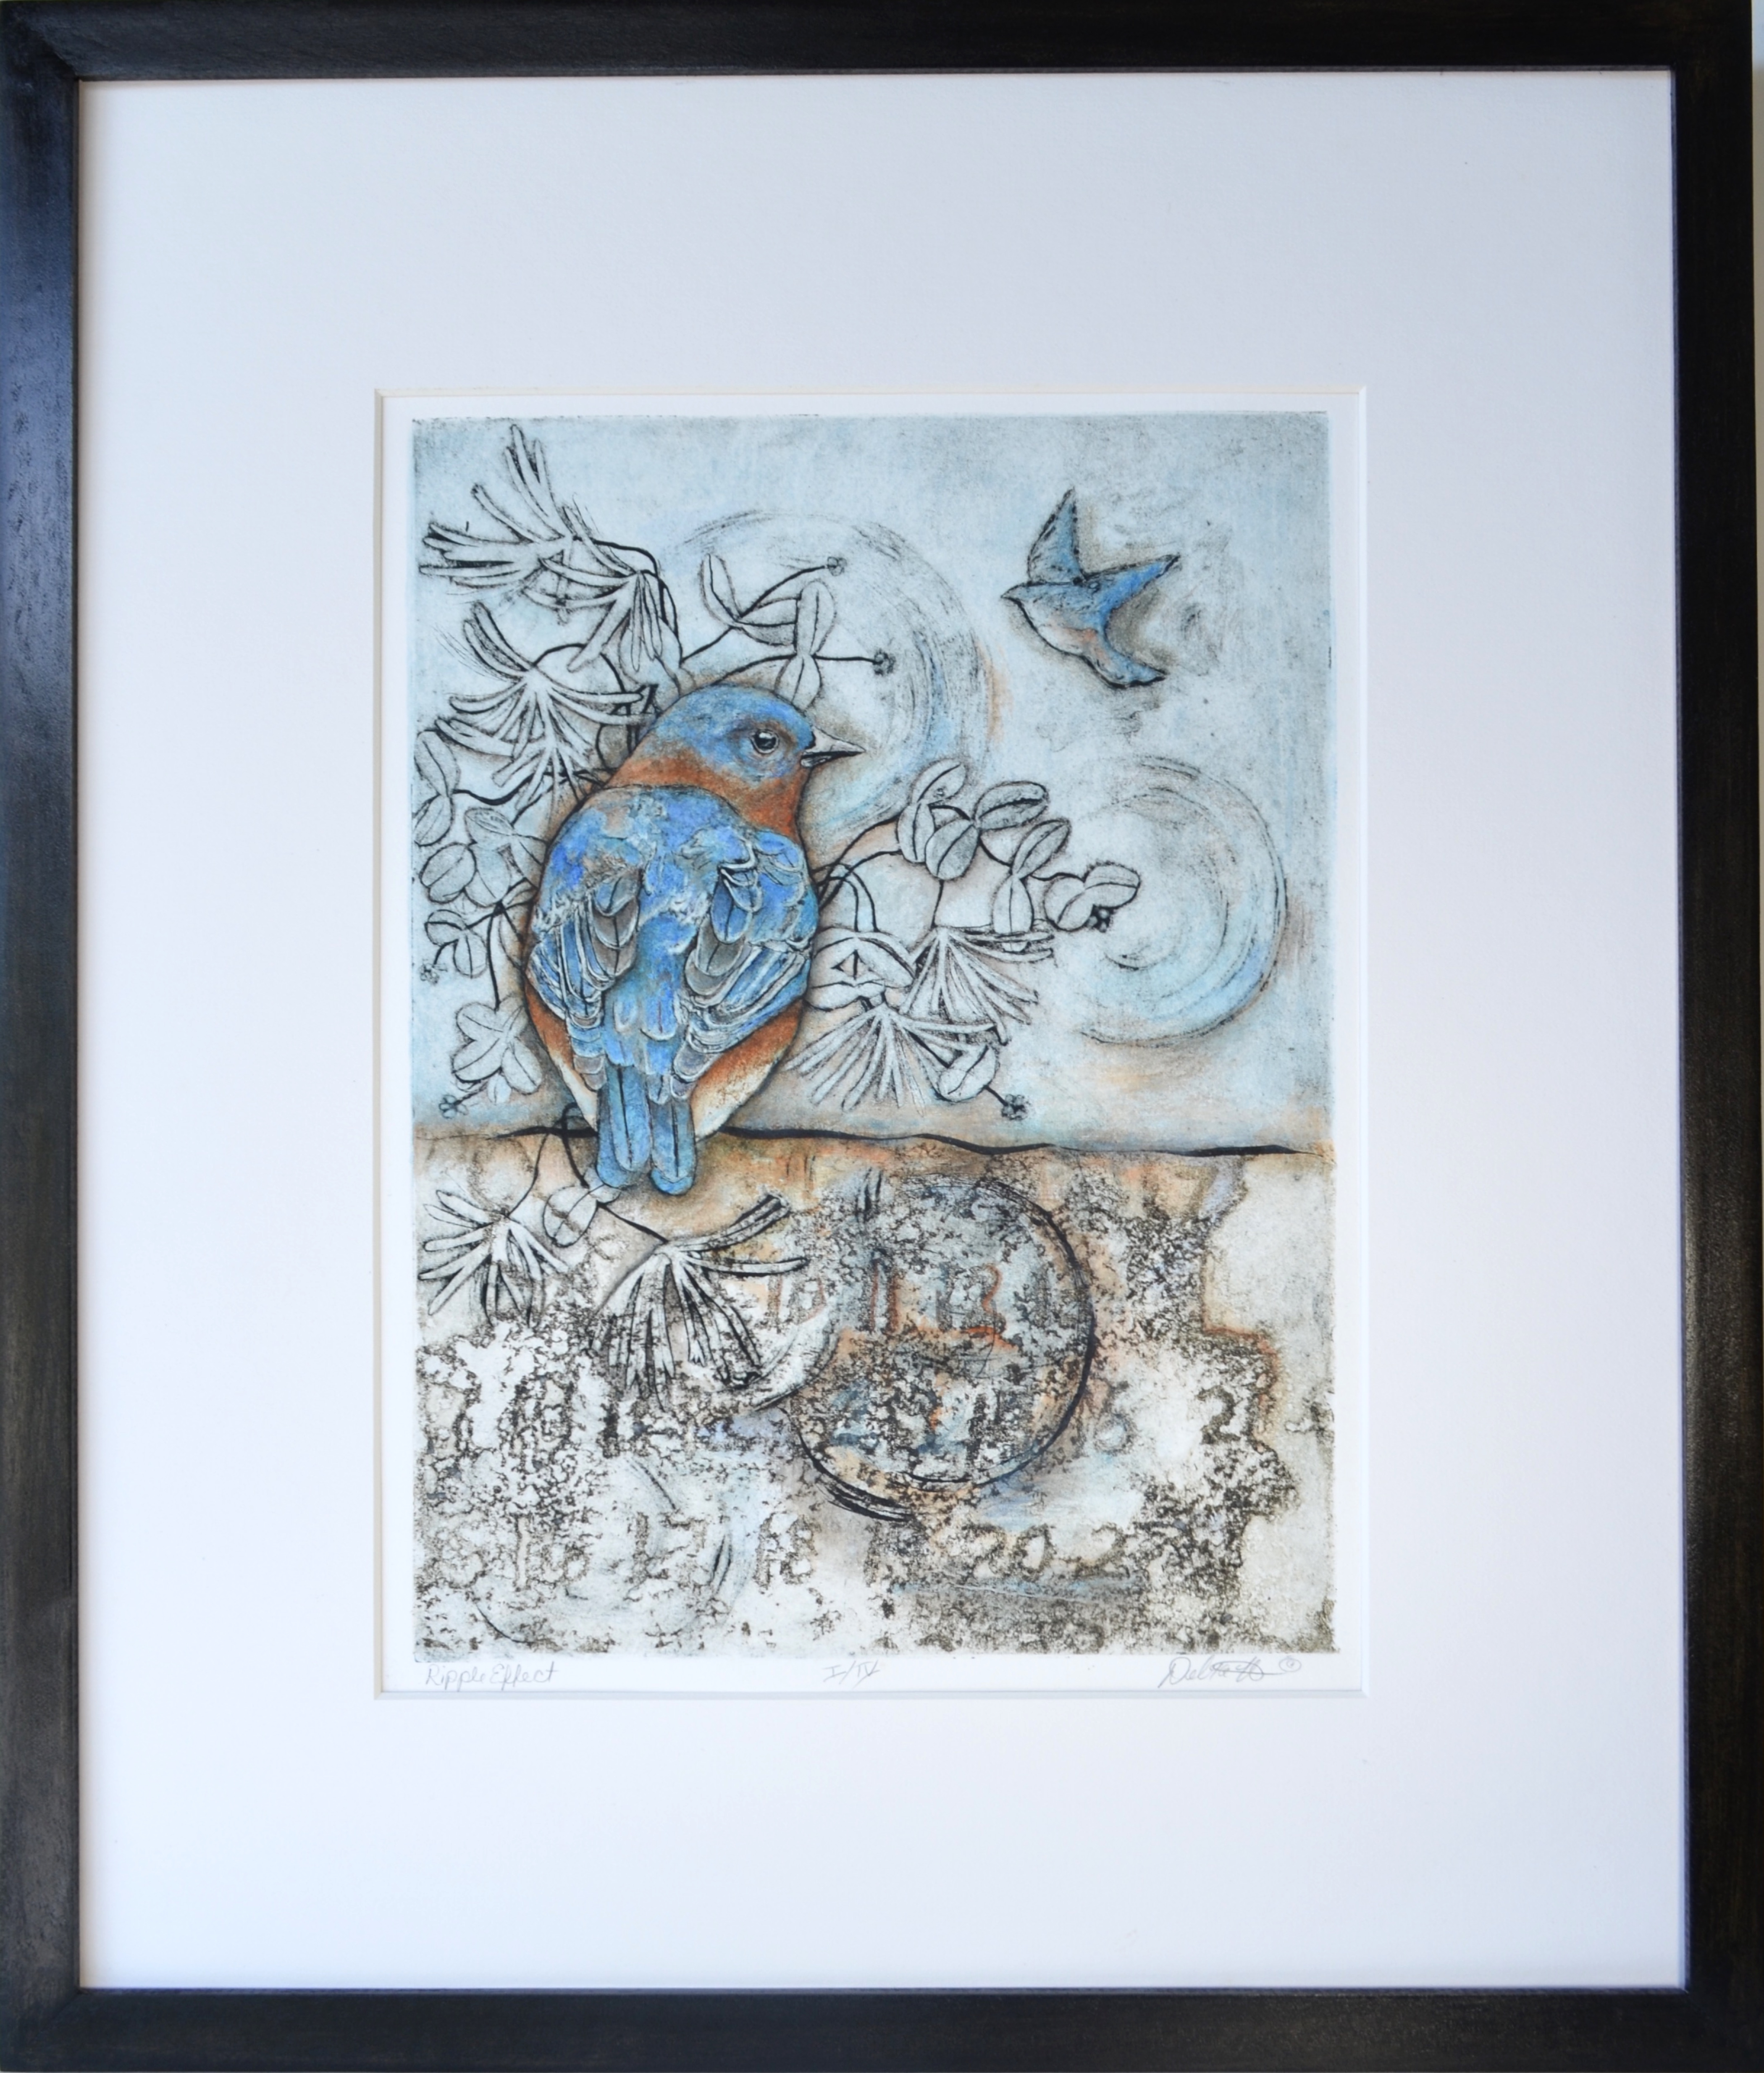 'Ripple Effect', collagraph with mixed media by Debra Mixon Holliday ($195) ⎼ 'Being at home for much of 2020 due to the pandemic, I noticed the typical arrival of spring with all of its hallmarks and yet time and the passing of days has been anything but normal. I started a series of collagraphs with mixed media to explore this idea, aligning birds as nature's symbols alongside manmade indicators of time. In 'Ripple Effect', the result conjures a page torn from a calendar, somewhat distorted and not quite decipherable.'